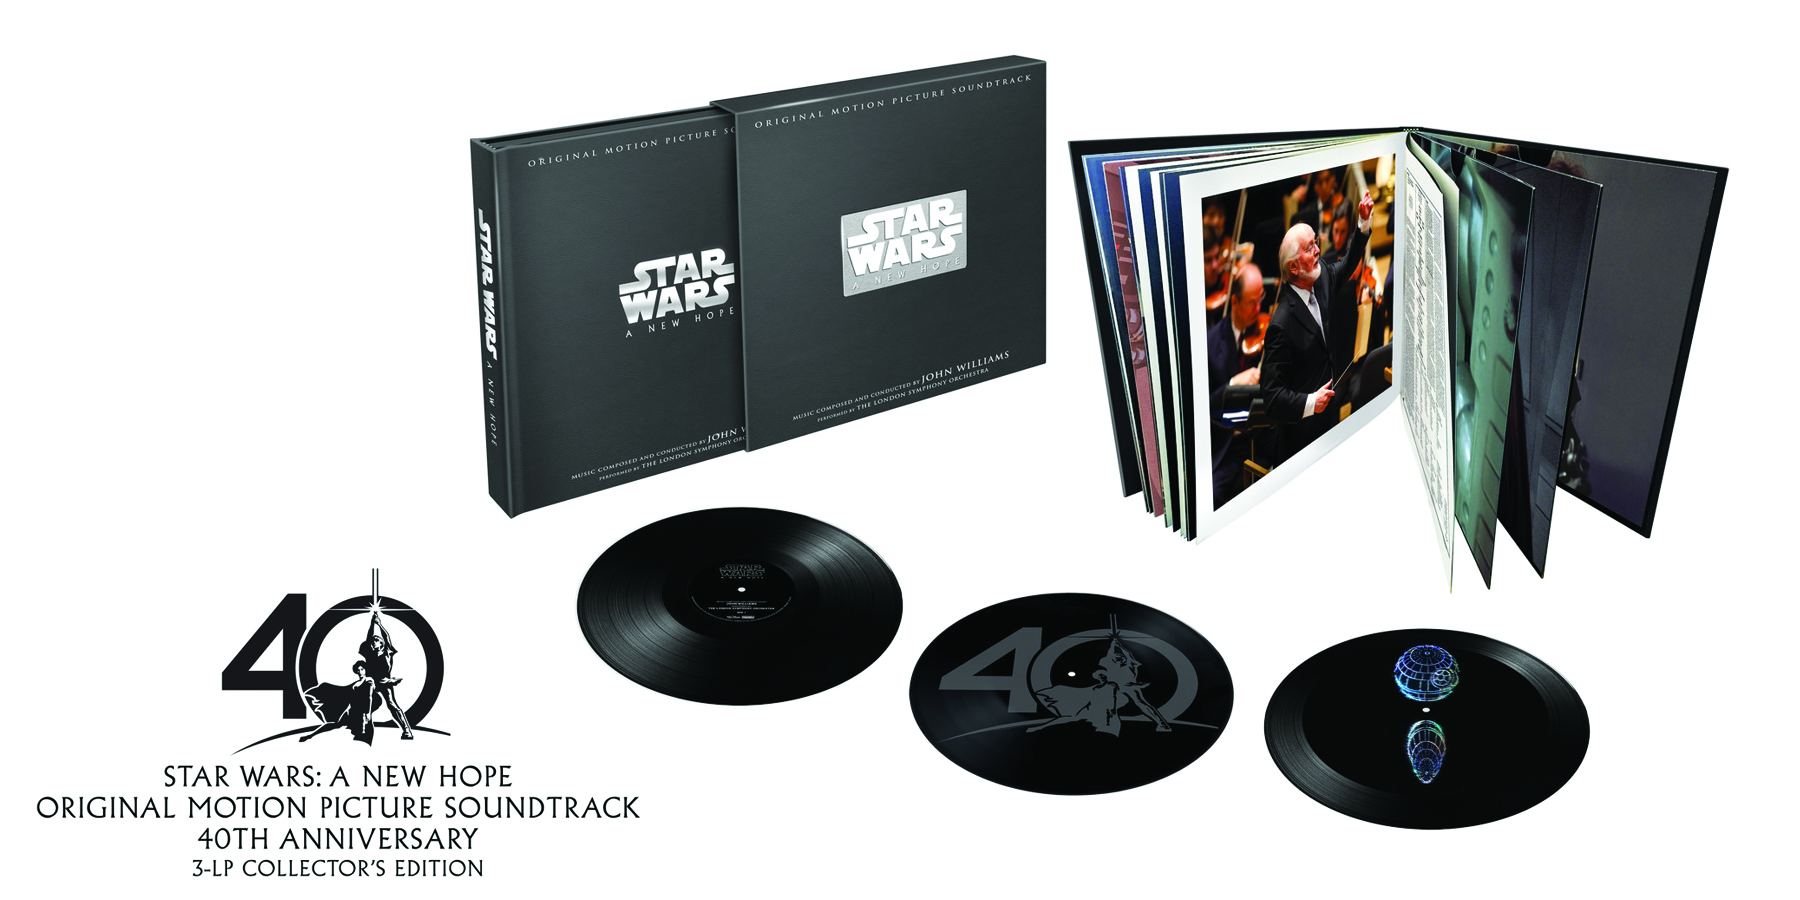 Star Wars: A New Hope 3-LP Vinyl Album Boxed Set Of Composer John Williams' Oscar-Winning Score To Be Released On December 1